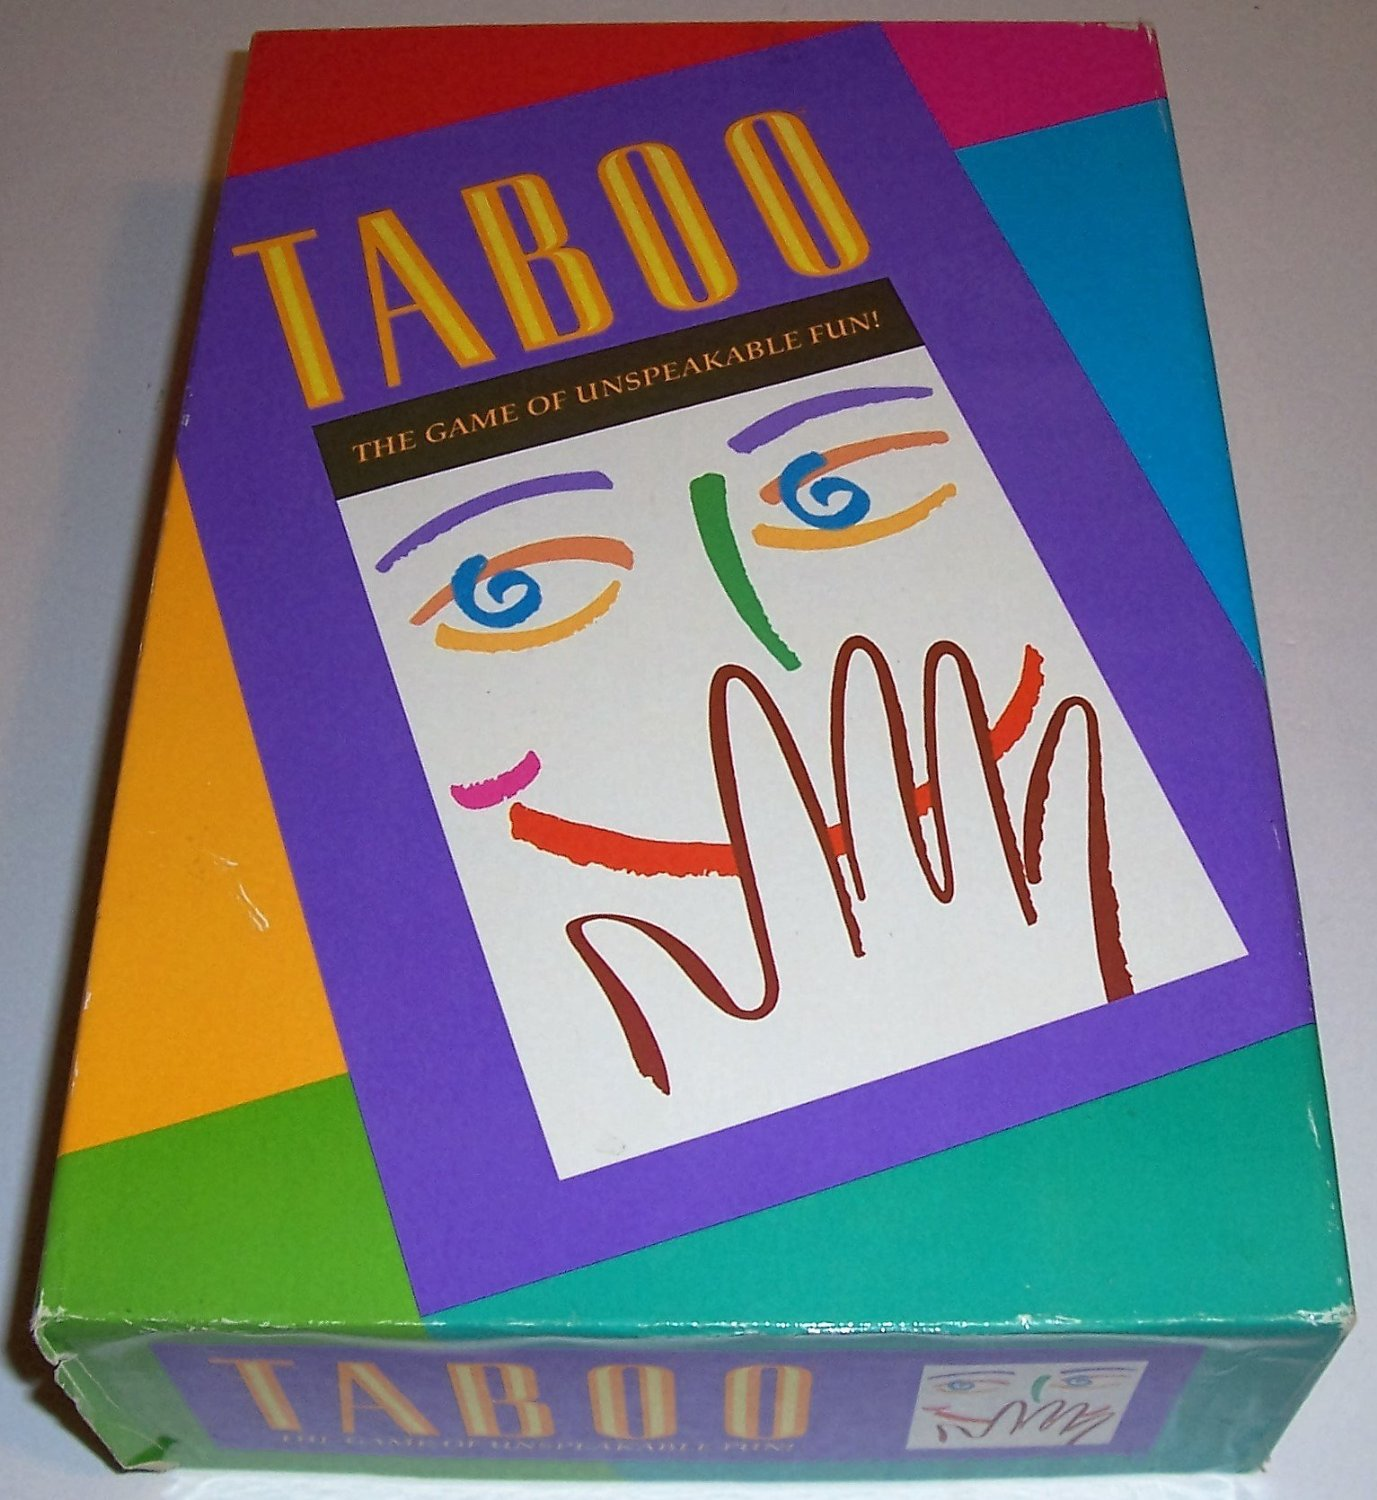 Milton Bradley Taboo - the Game of Unspeakable Fun (1989 Edition)